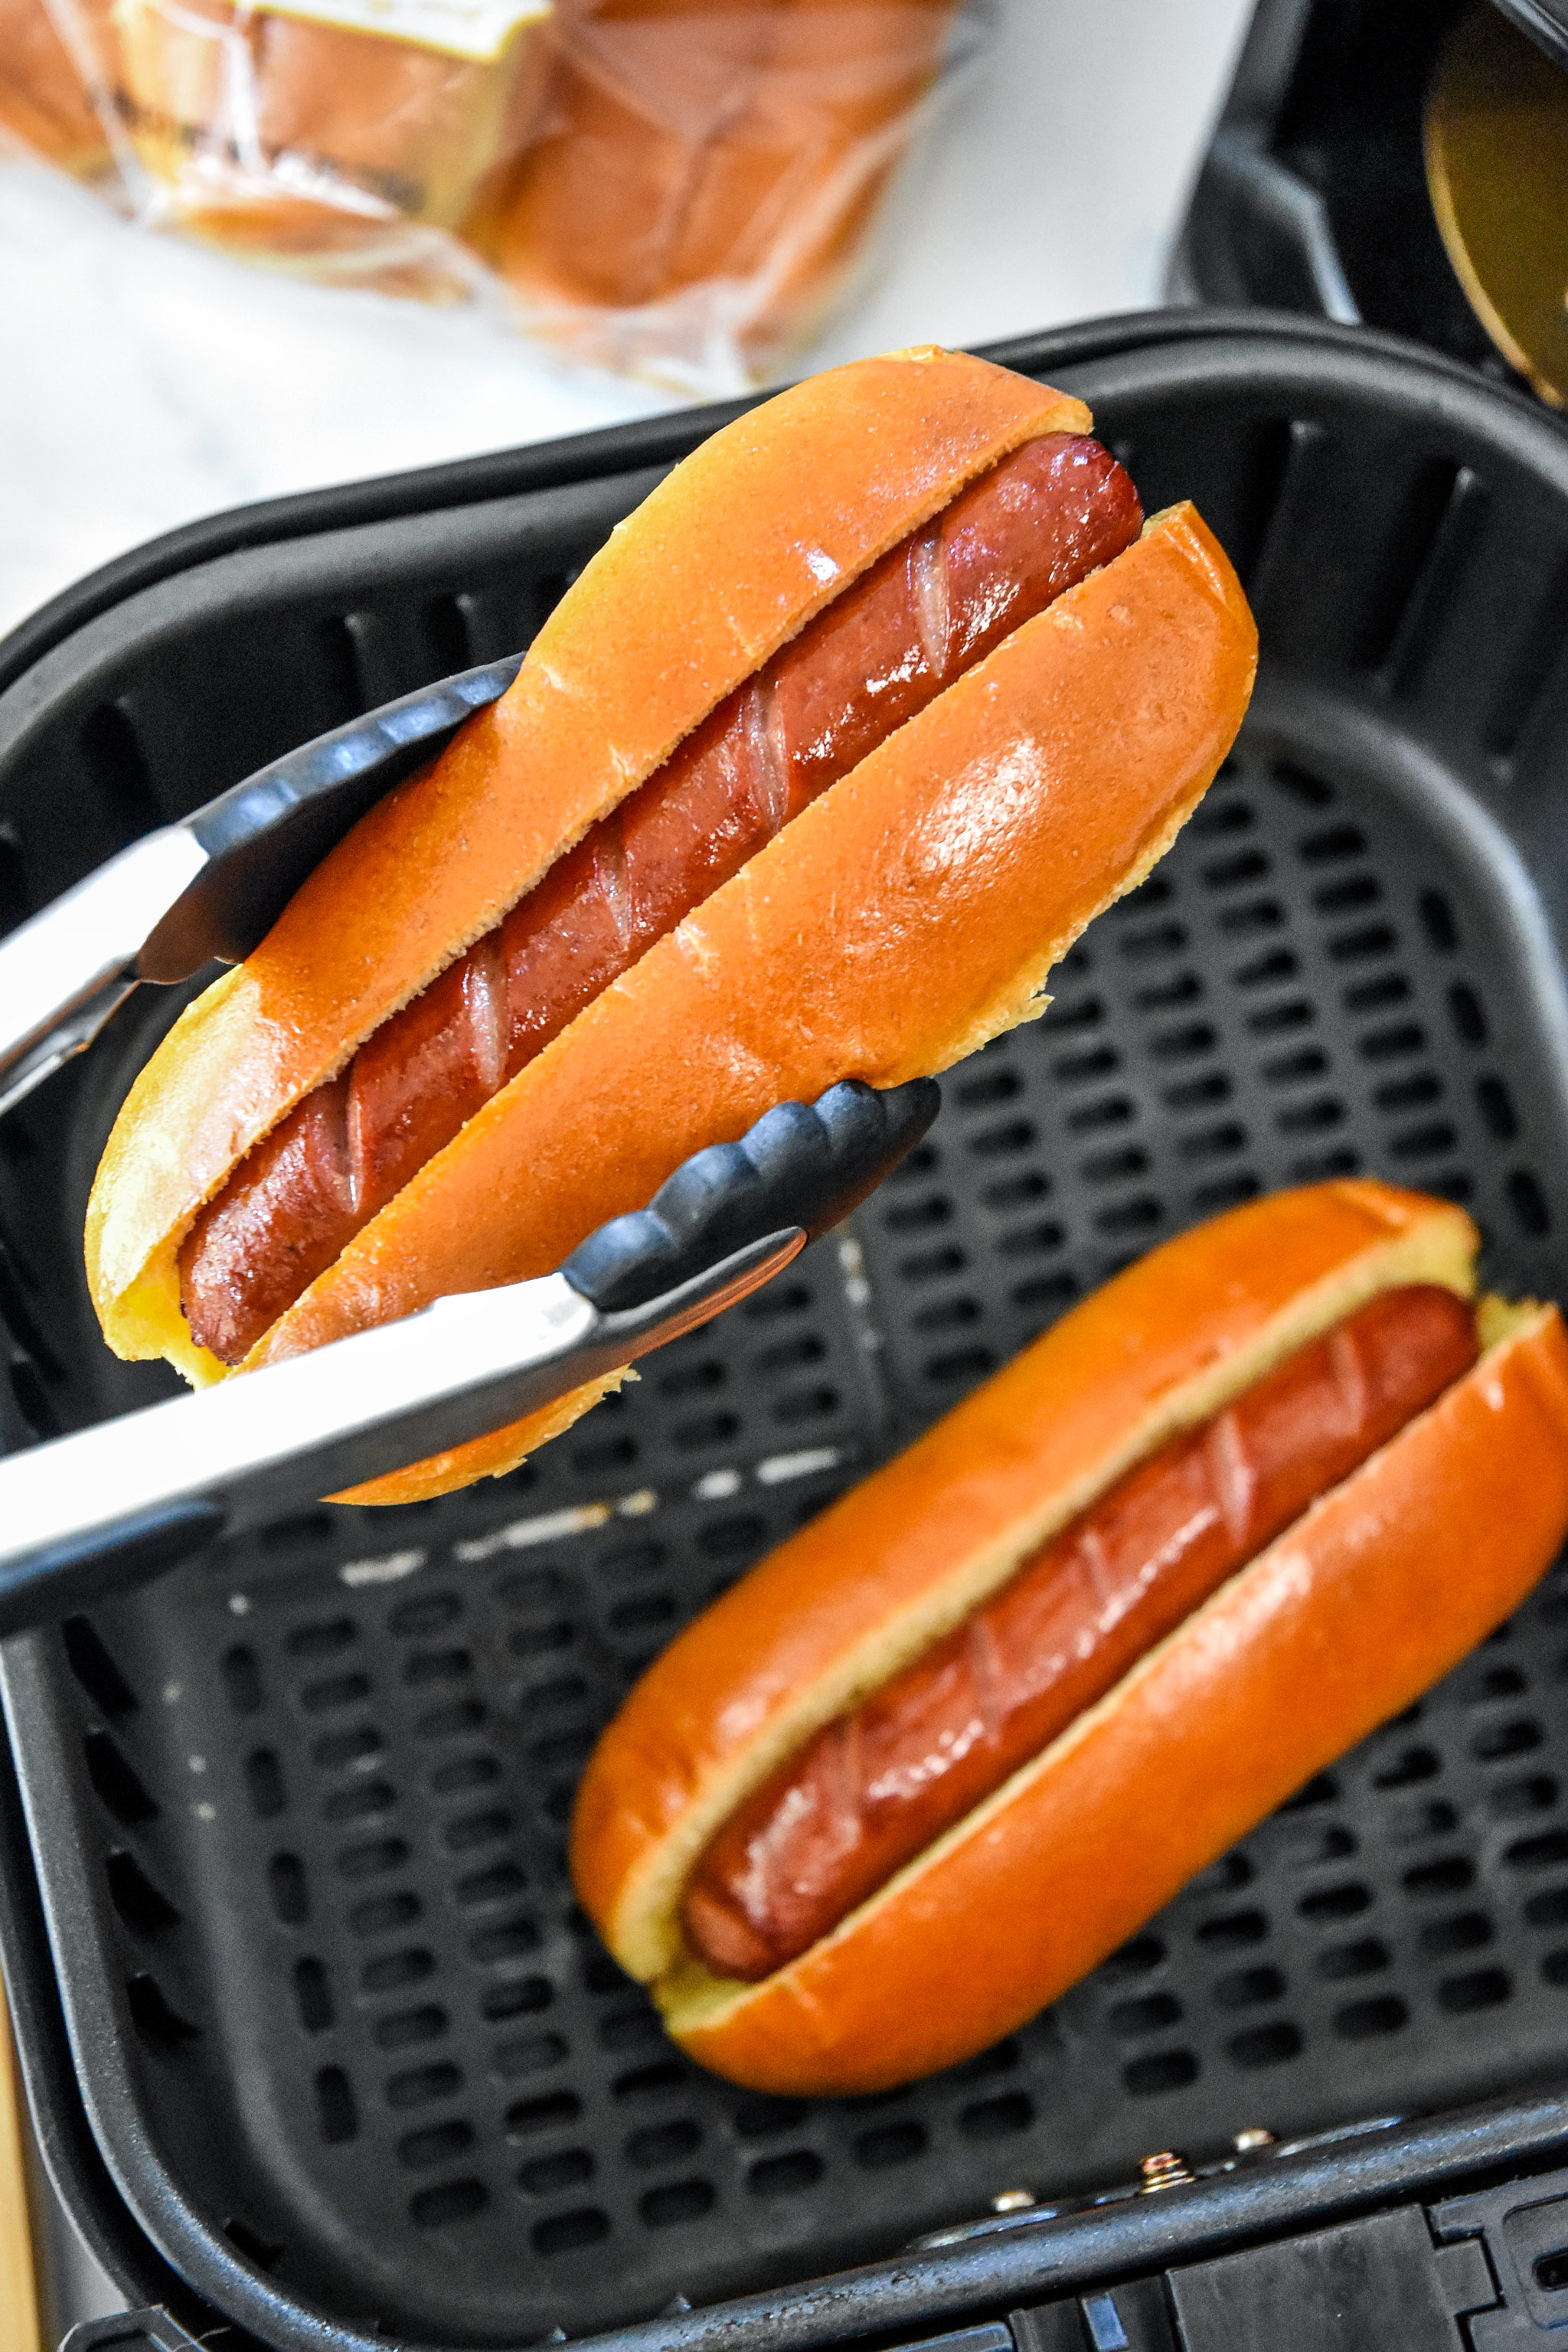 buns and hot dogs going into the air fryer basket.